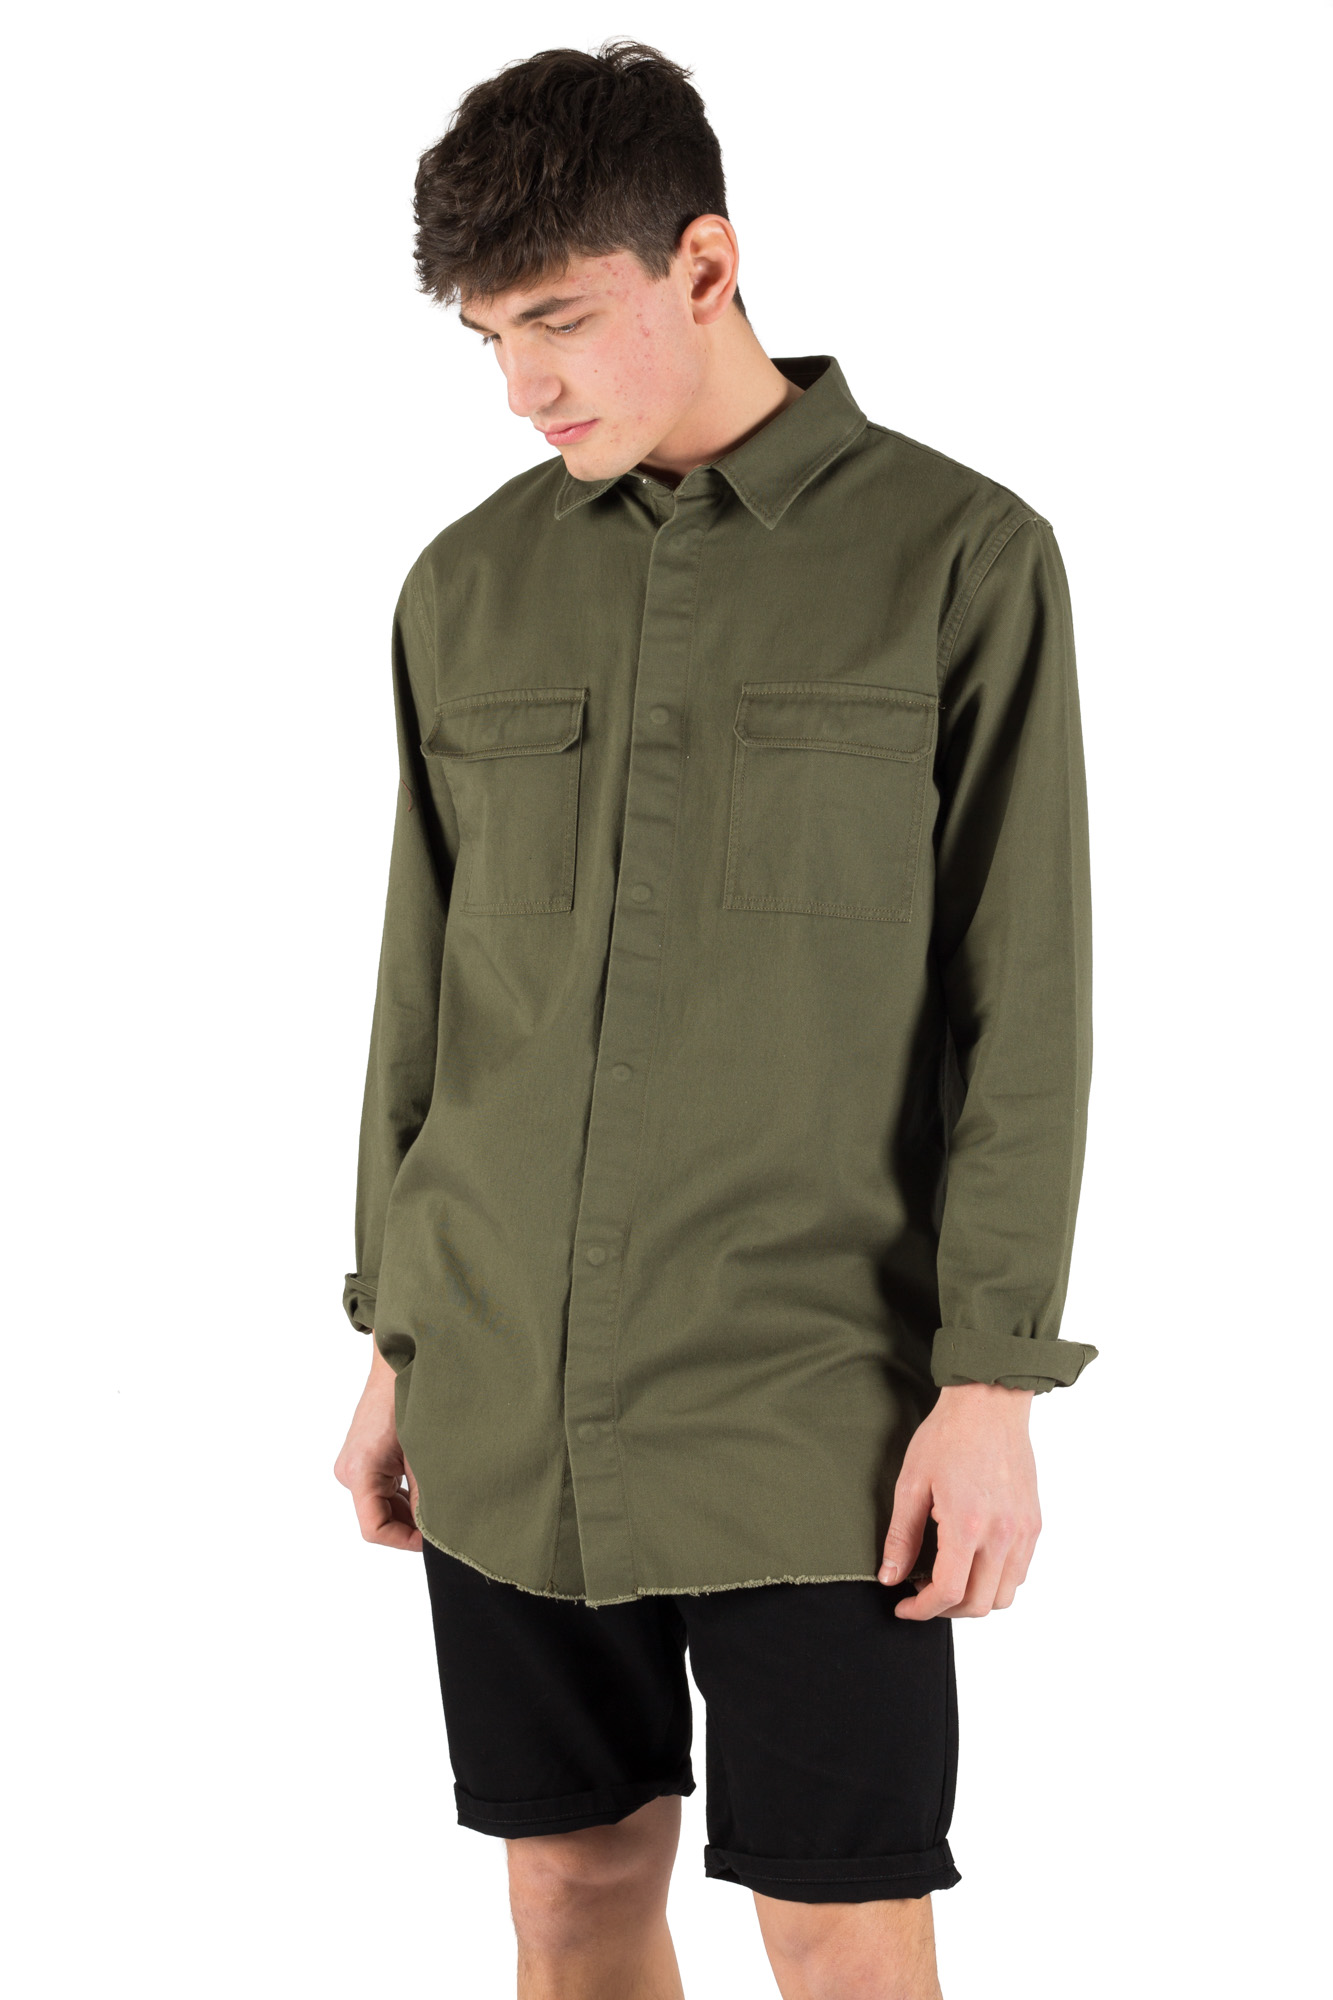 Dr. Denim - Olive denim shirt